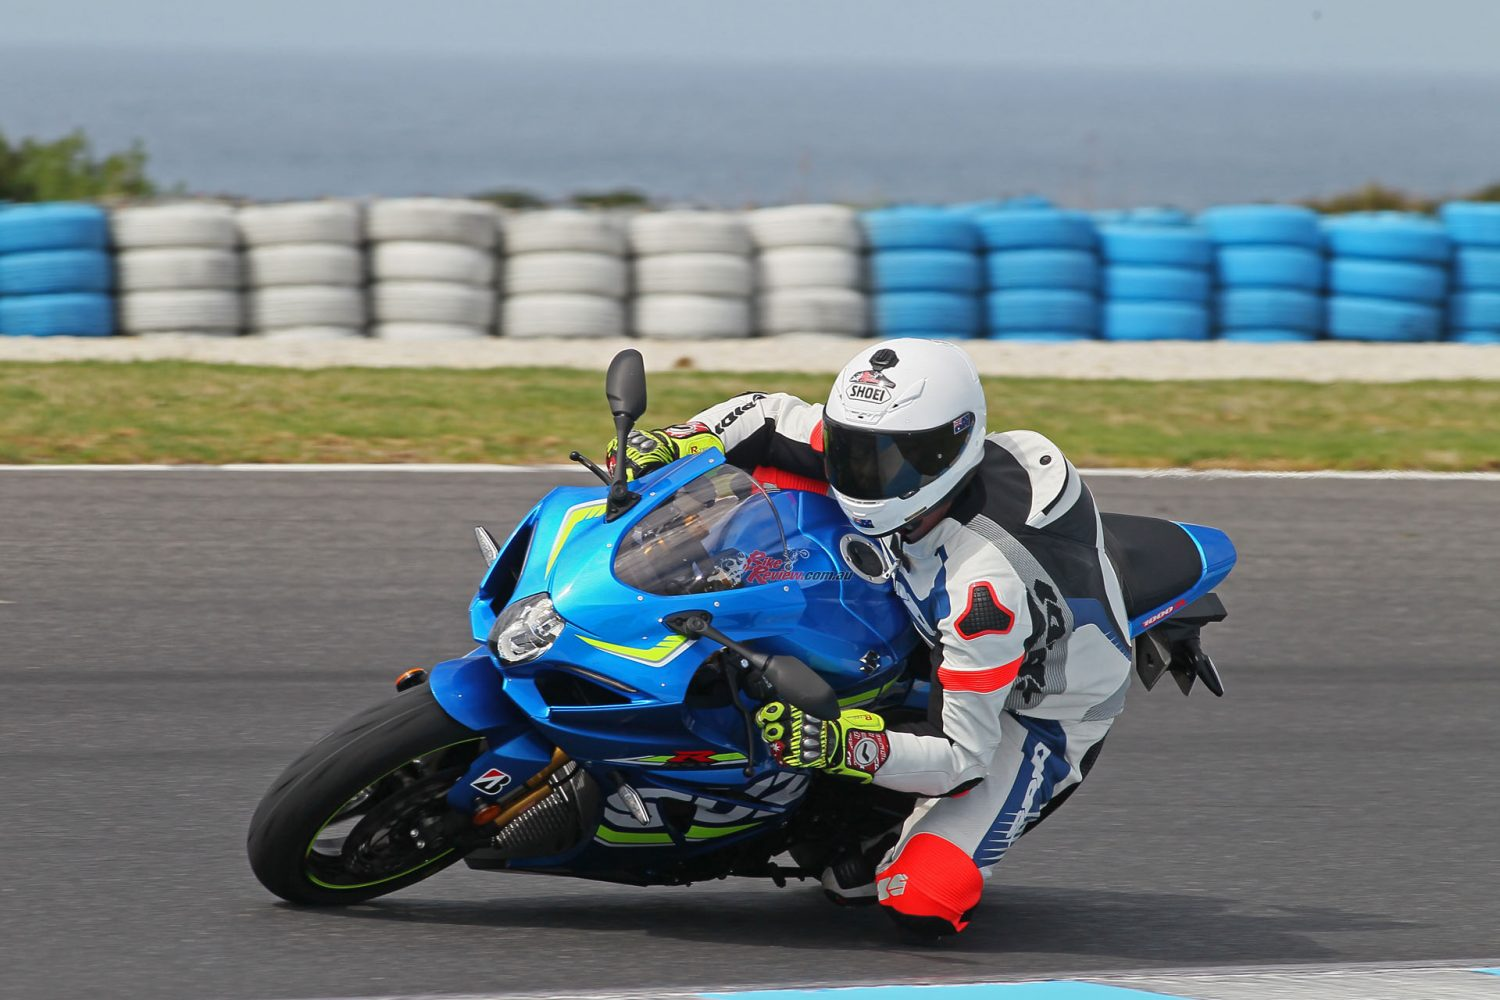 Jeff testing out the Suzuki GSX-R1000R at the recent Australian Launch